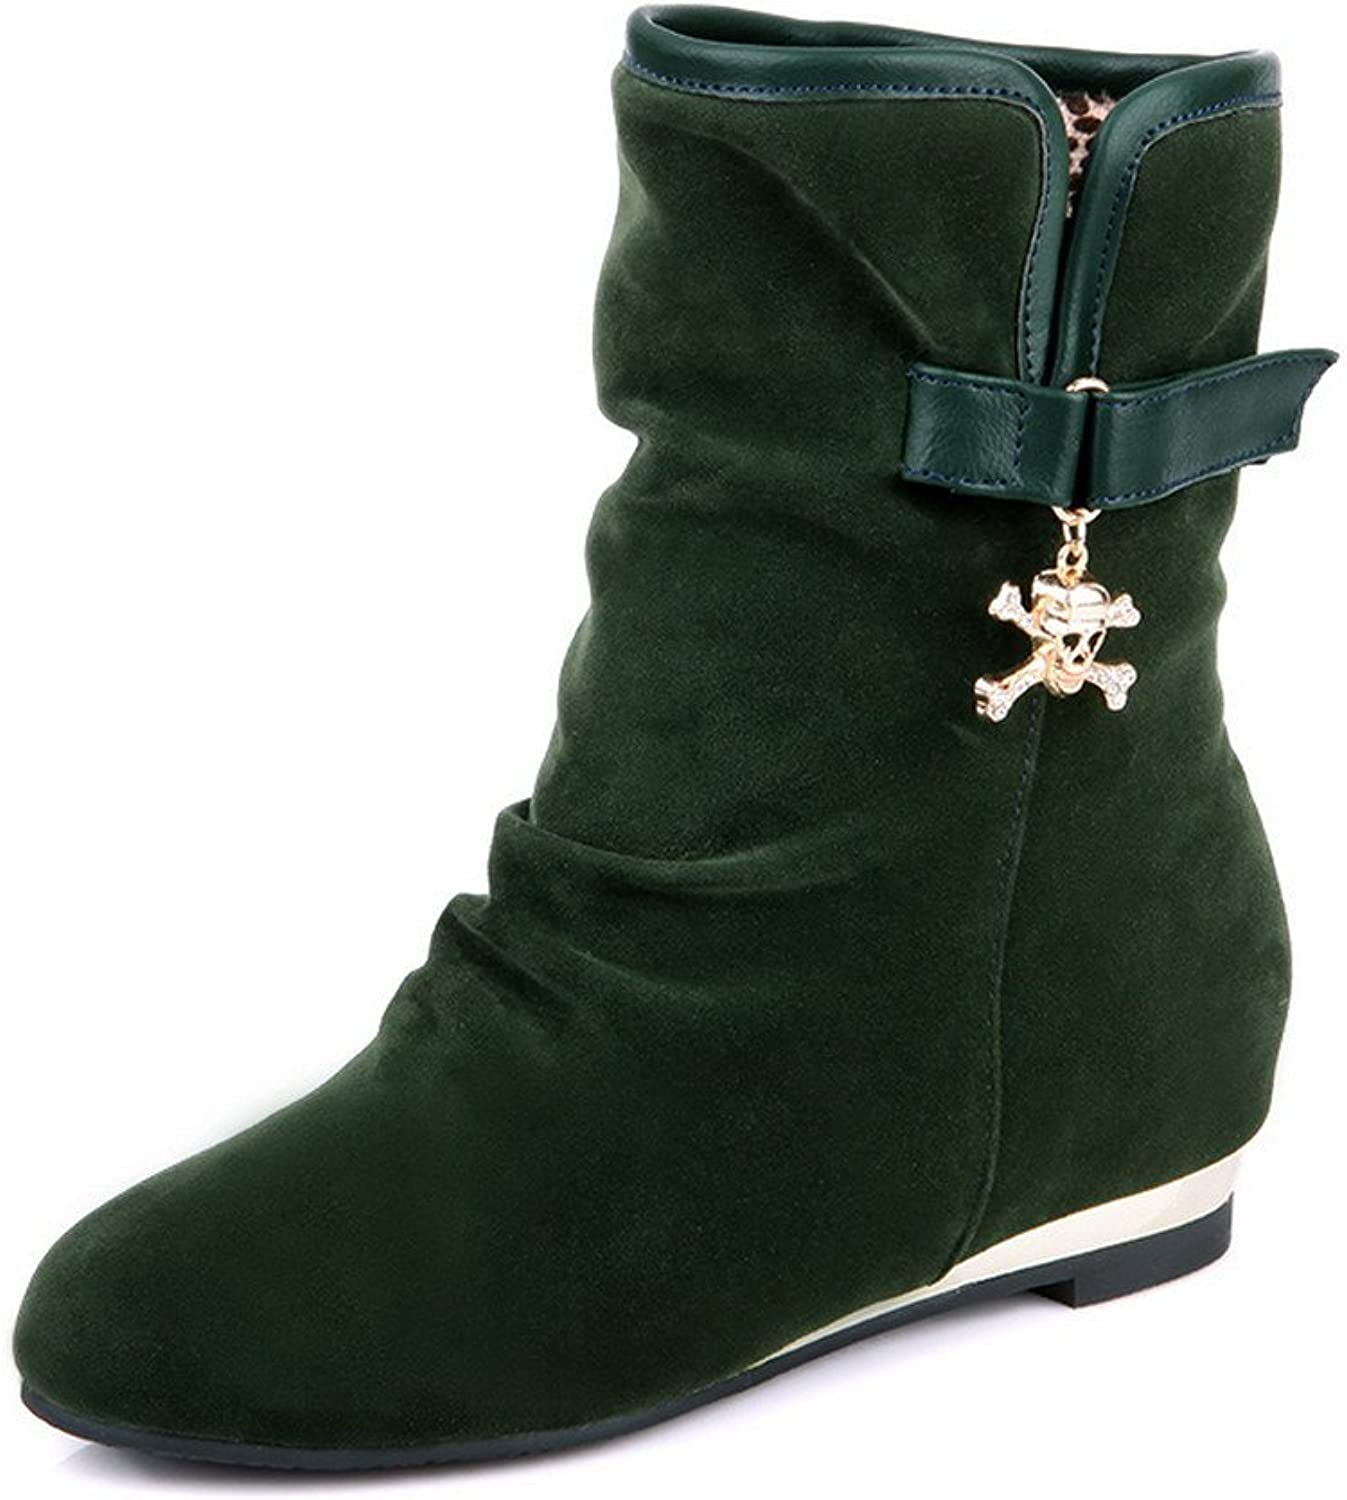 AmoonyFashion Girls Closed Round Toe Kitten Heels PU Short Plush Solid Boots with Ruched and Skull Heads, Green, 7.5 B(M) US